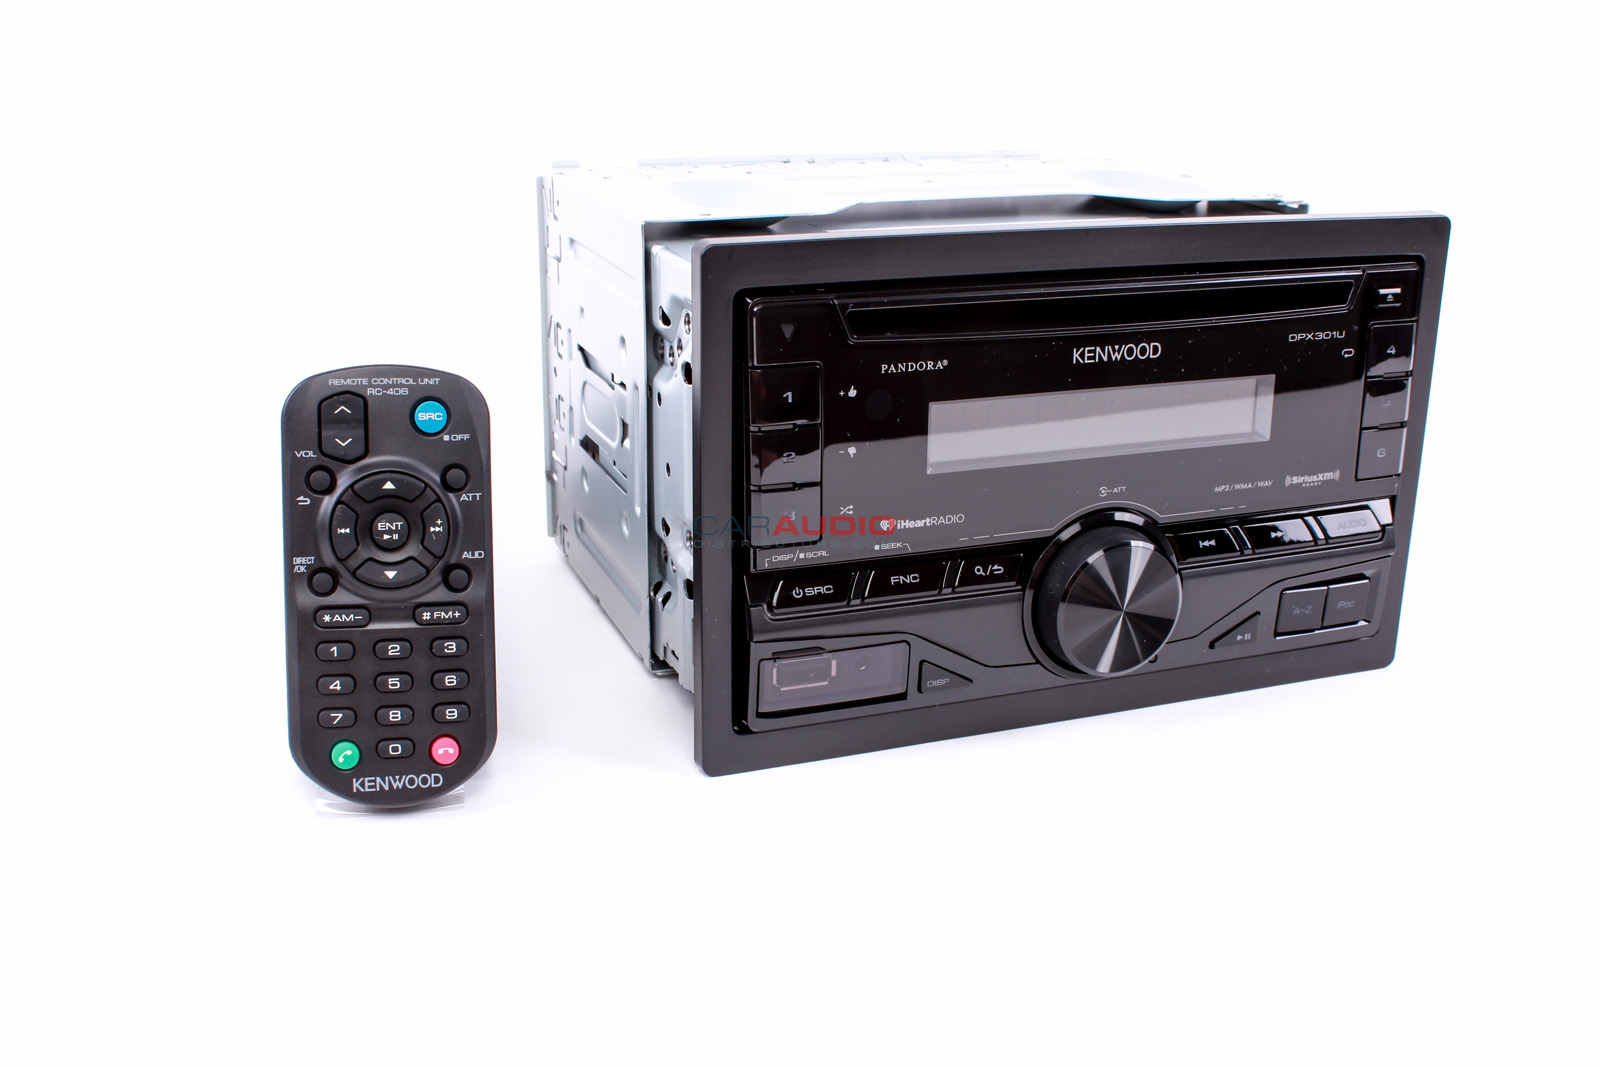 new kenwood dpx301u in dash double din car stereo cd mp3. Black Bedroom Furniture Sets. Home Design Ideas